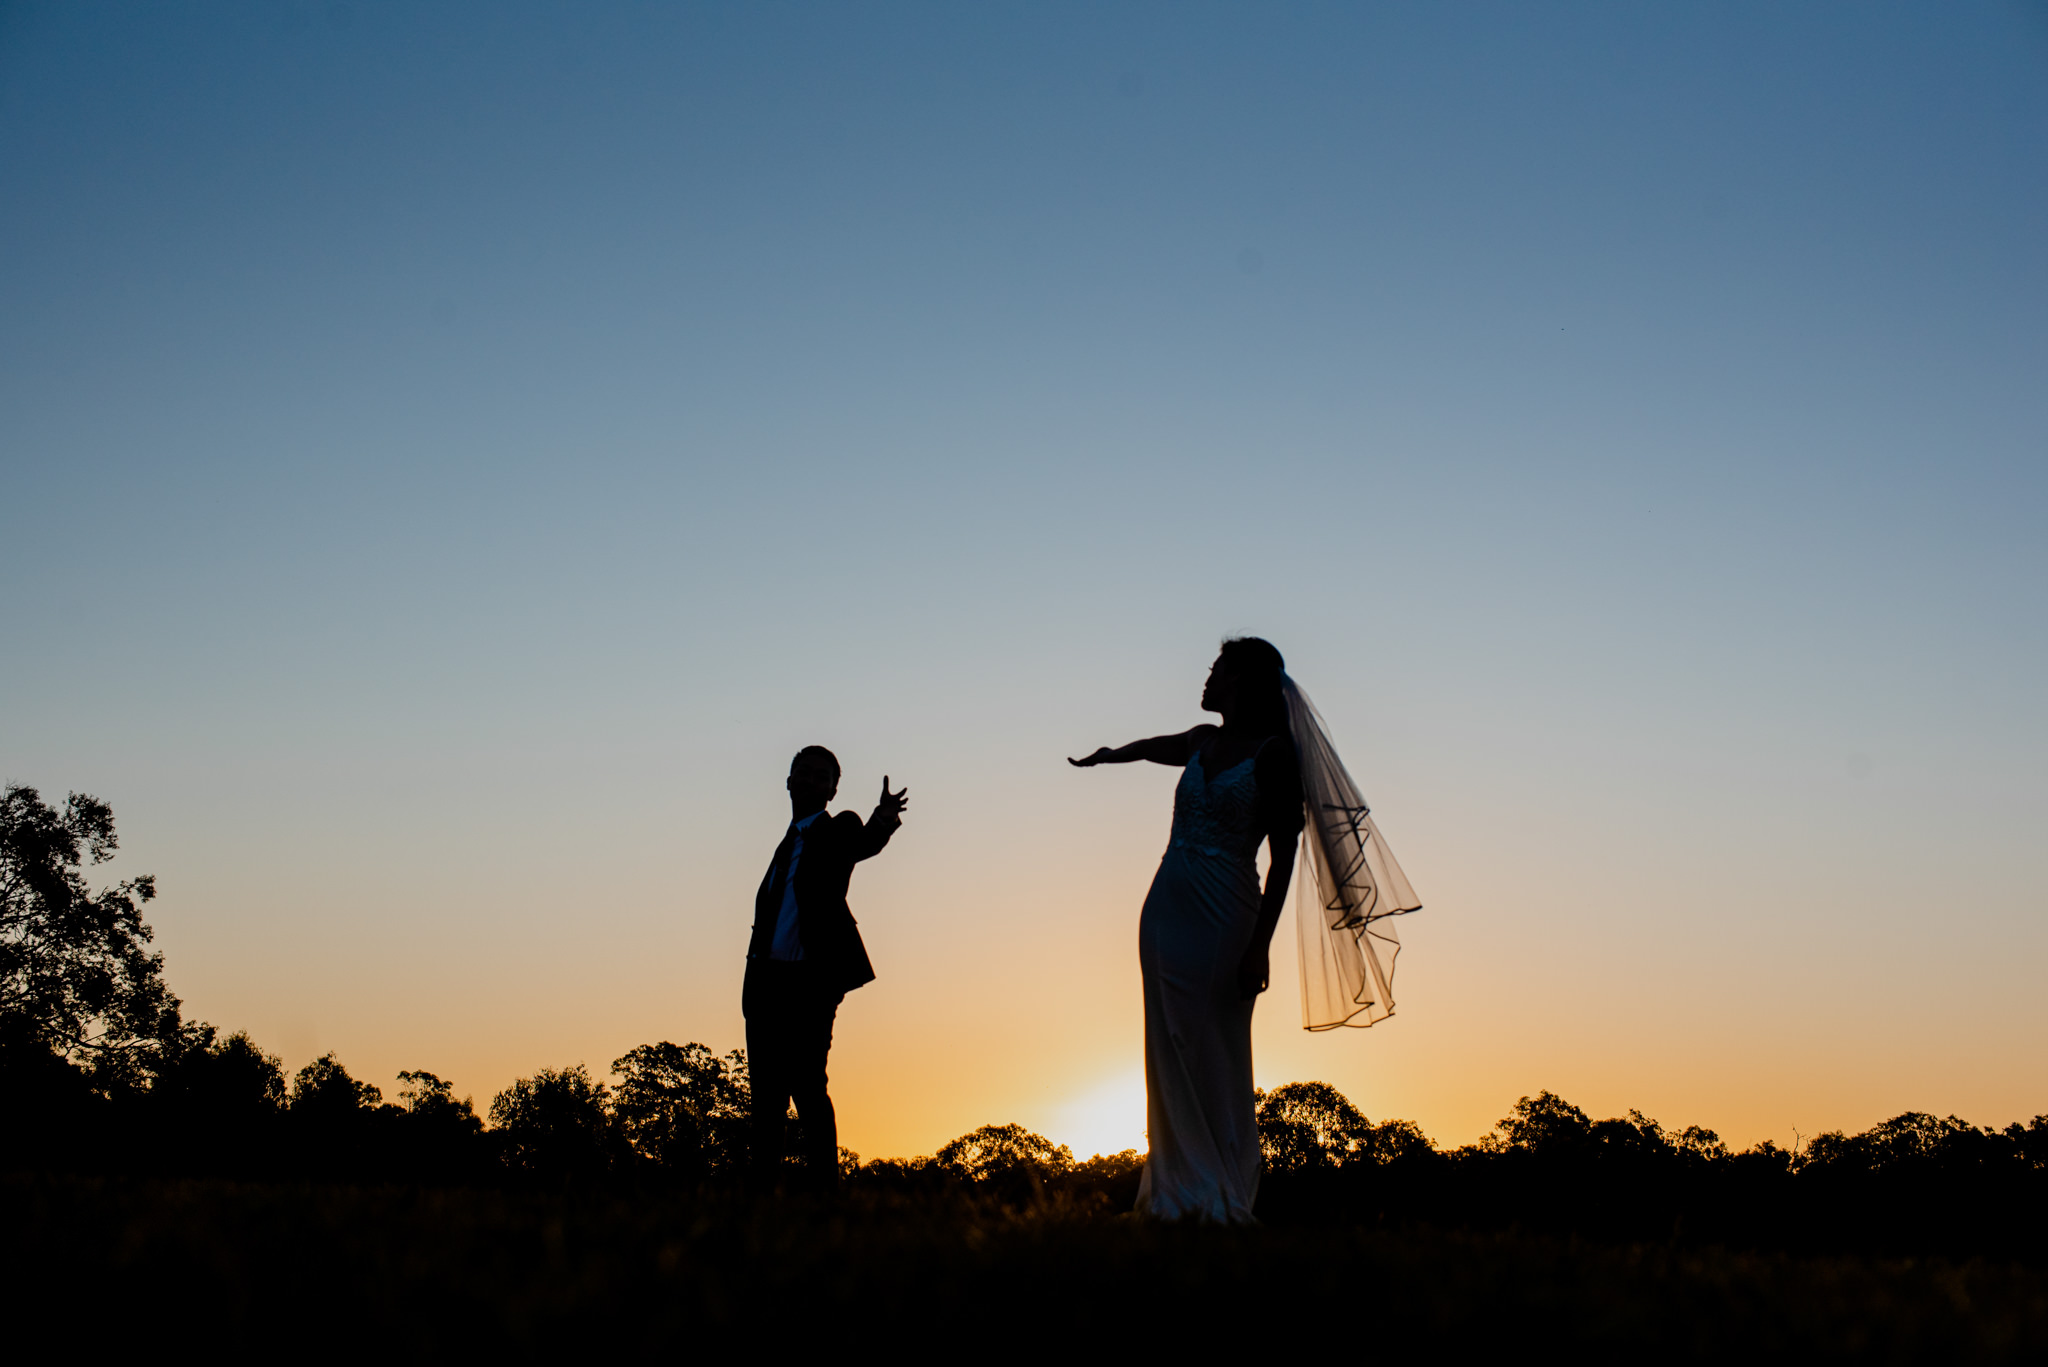 Silhouette of a bride and groom during sunset, reaching out towards each other